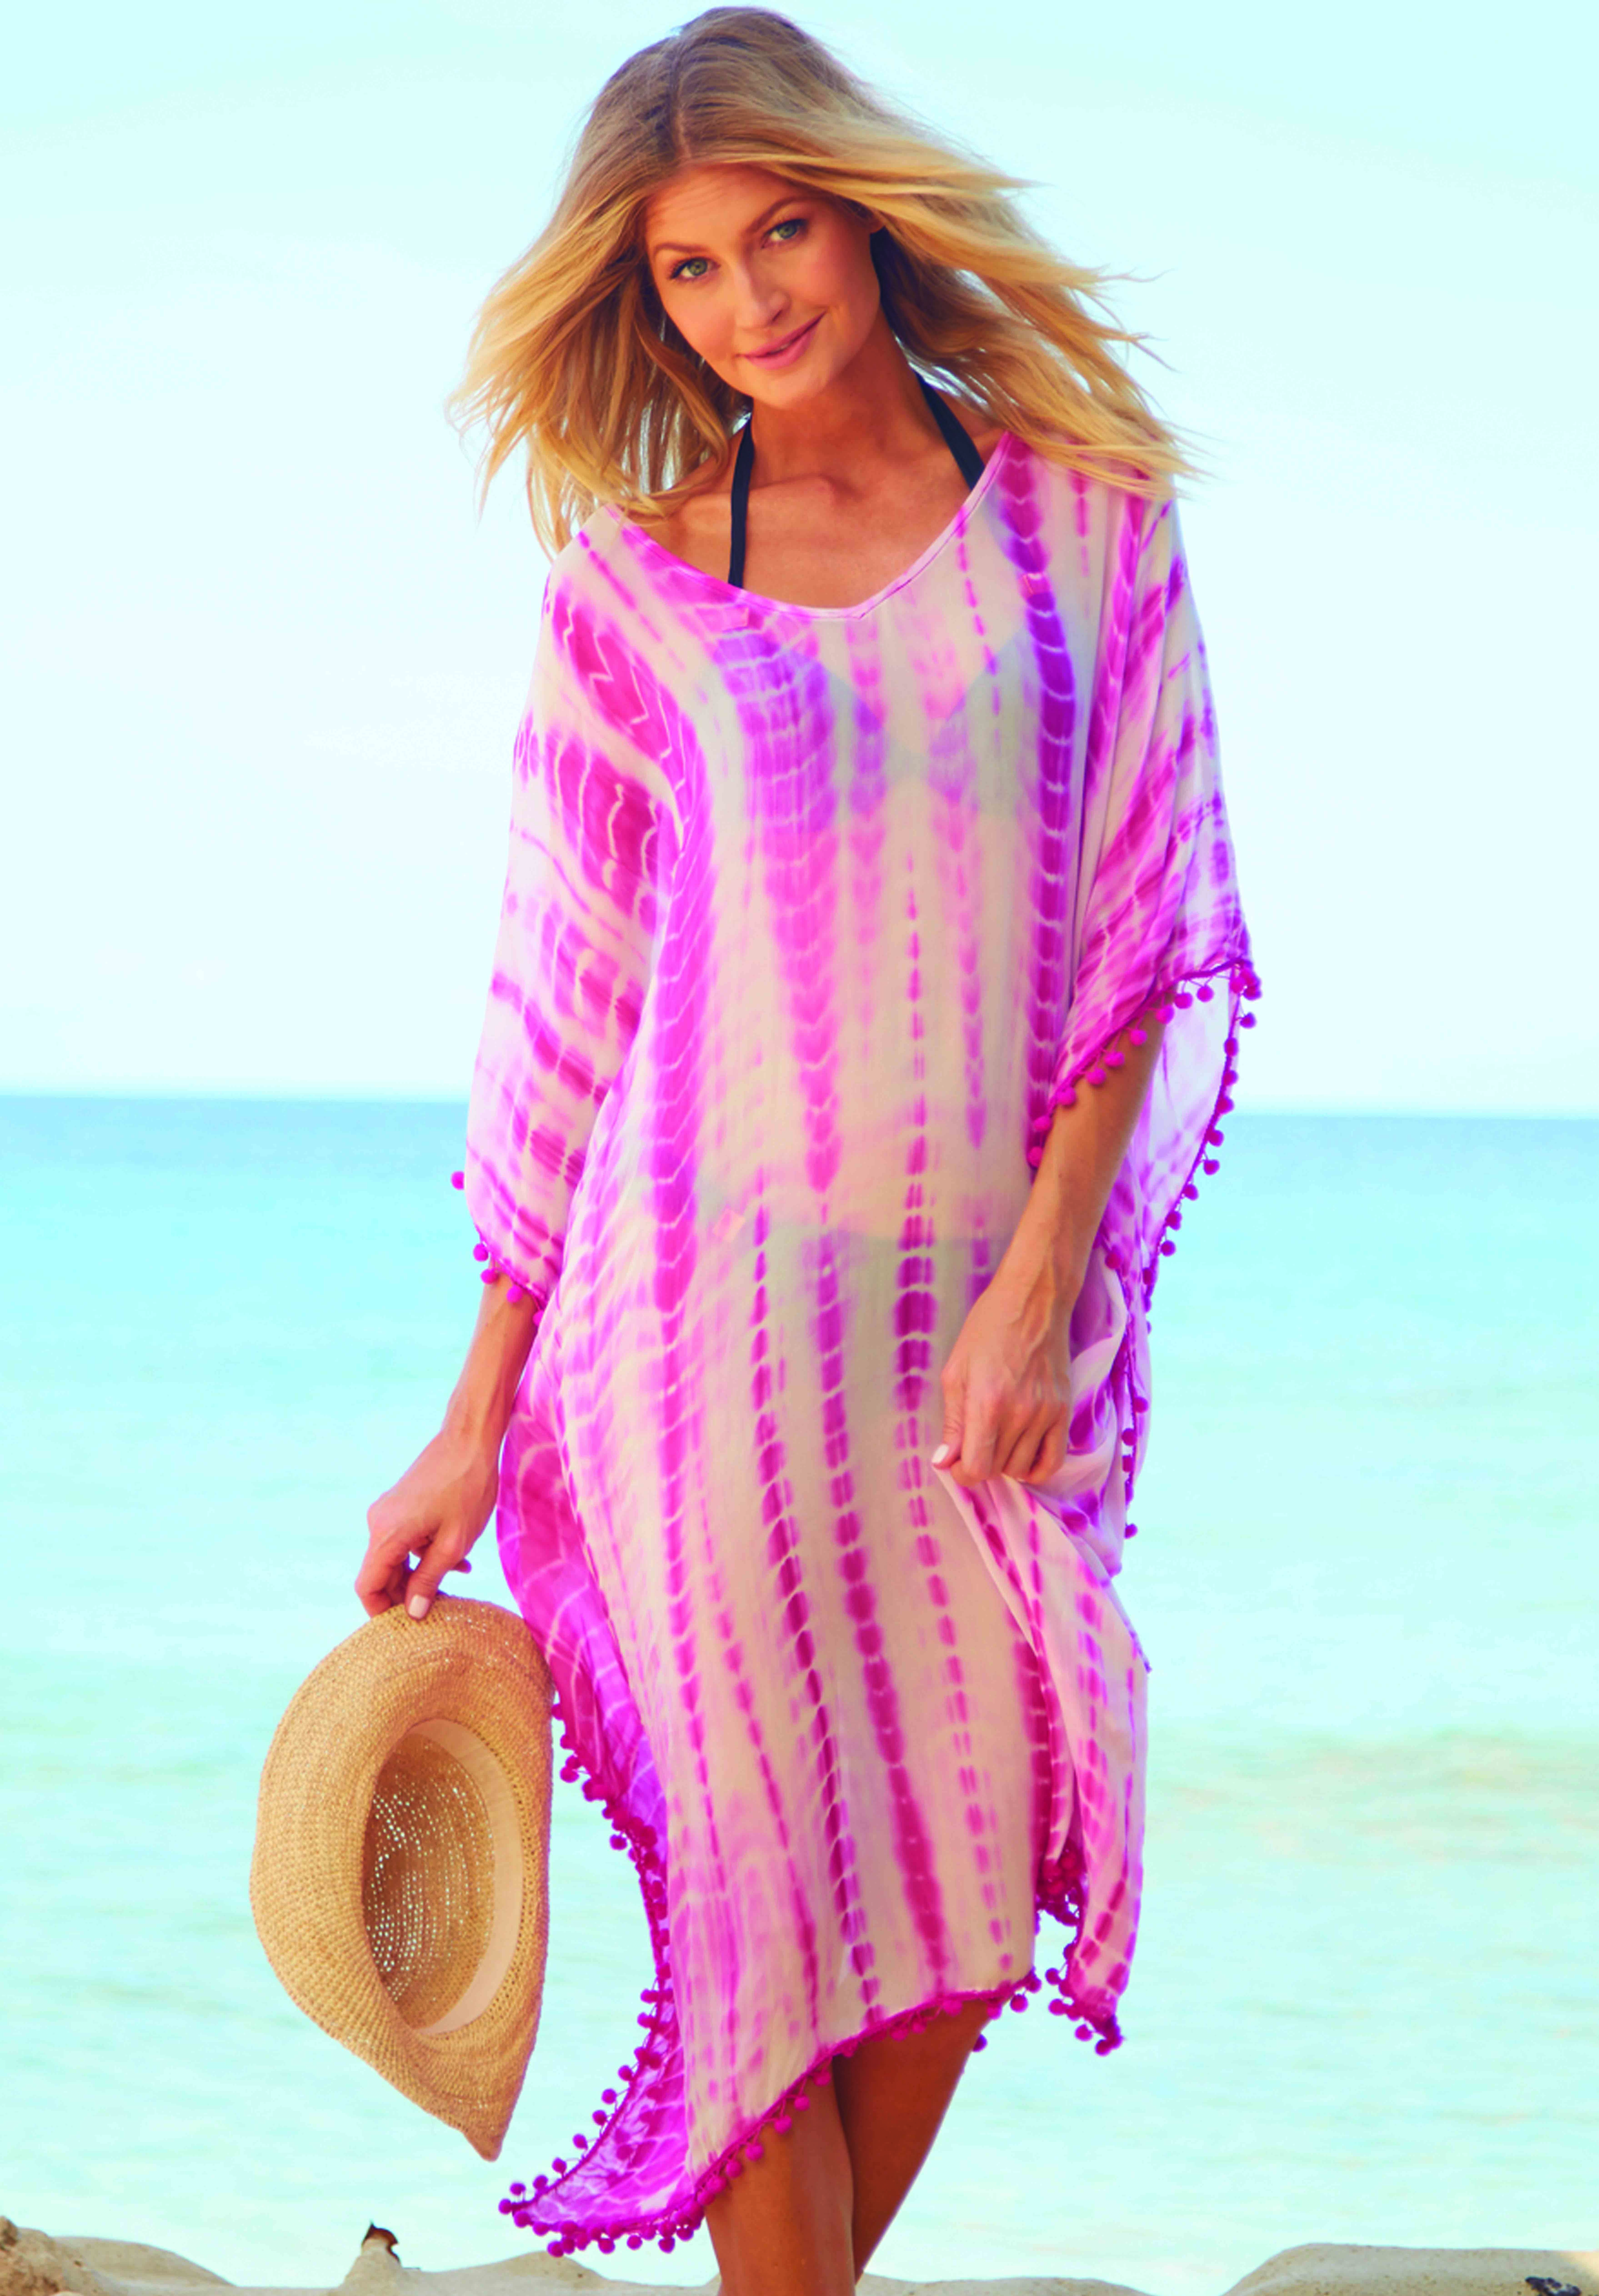 4fe7e56e0139d KIRA TIE DYE KAFTAN PINK - £70 - STYLE REFERENCE 17251 A classic kaftan  shape that has been given a hippie chic twist with a bold tie dye print in  rich ...